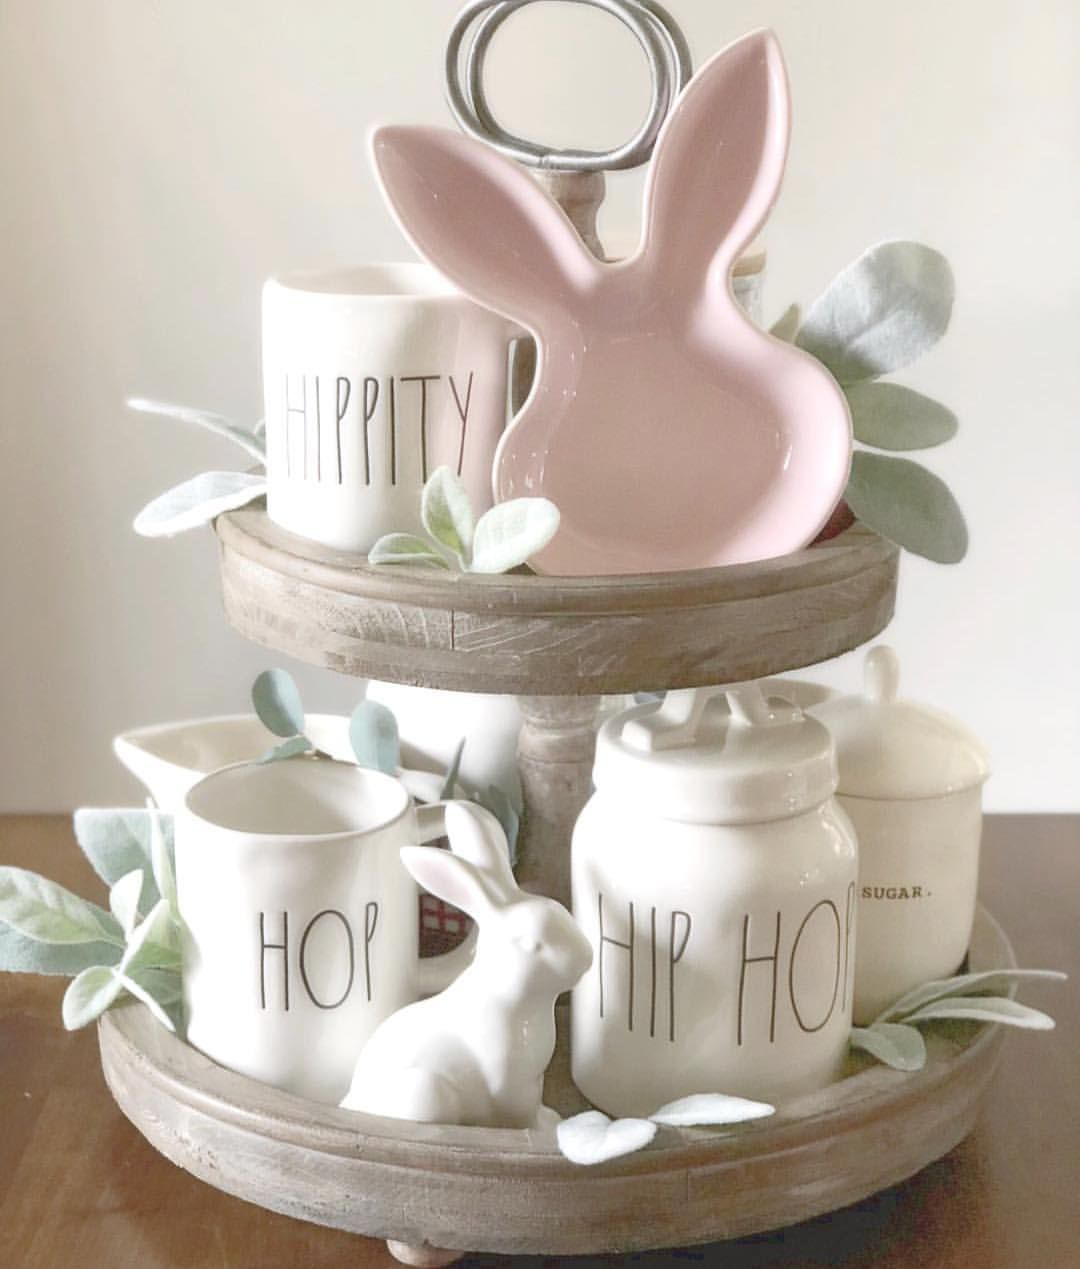 29 Likes 2 Comments Rae Dunn Support Page Dunnmyspace On Instagram Pink Bunny Bramblewood And Grace Spring Easter Decor Tiered Tray Decor Rae Dunn